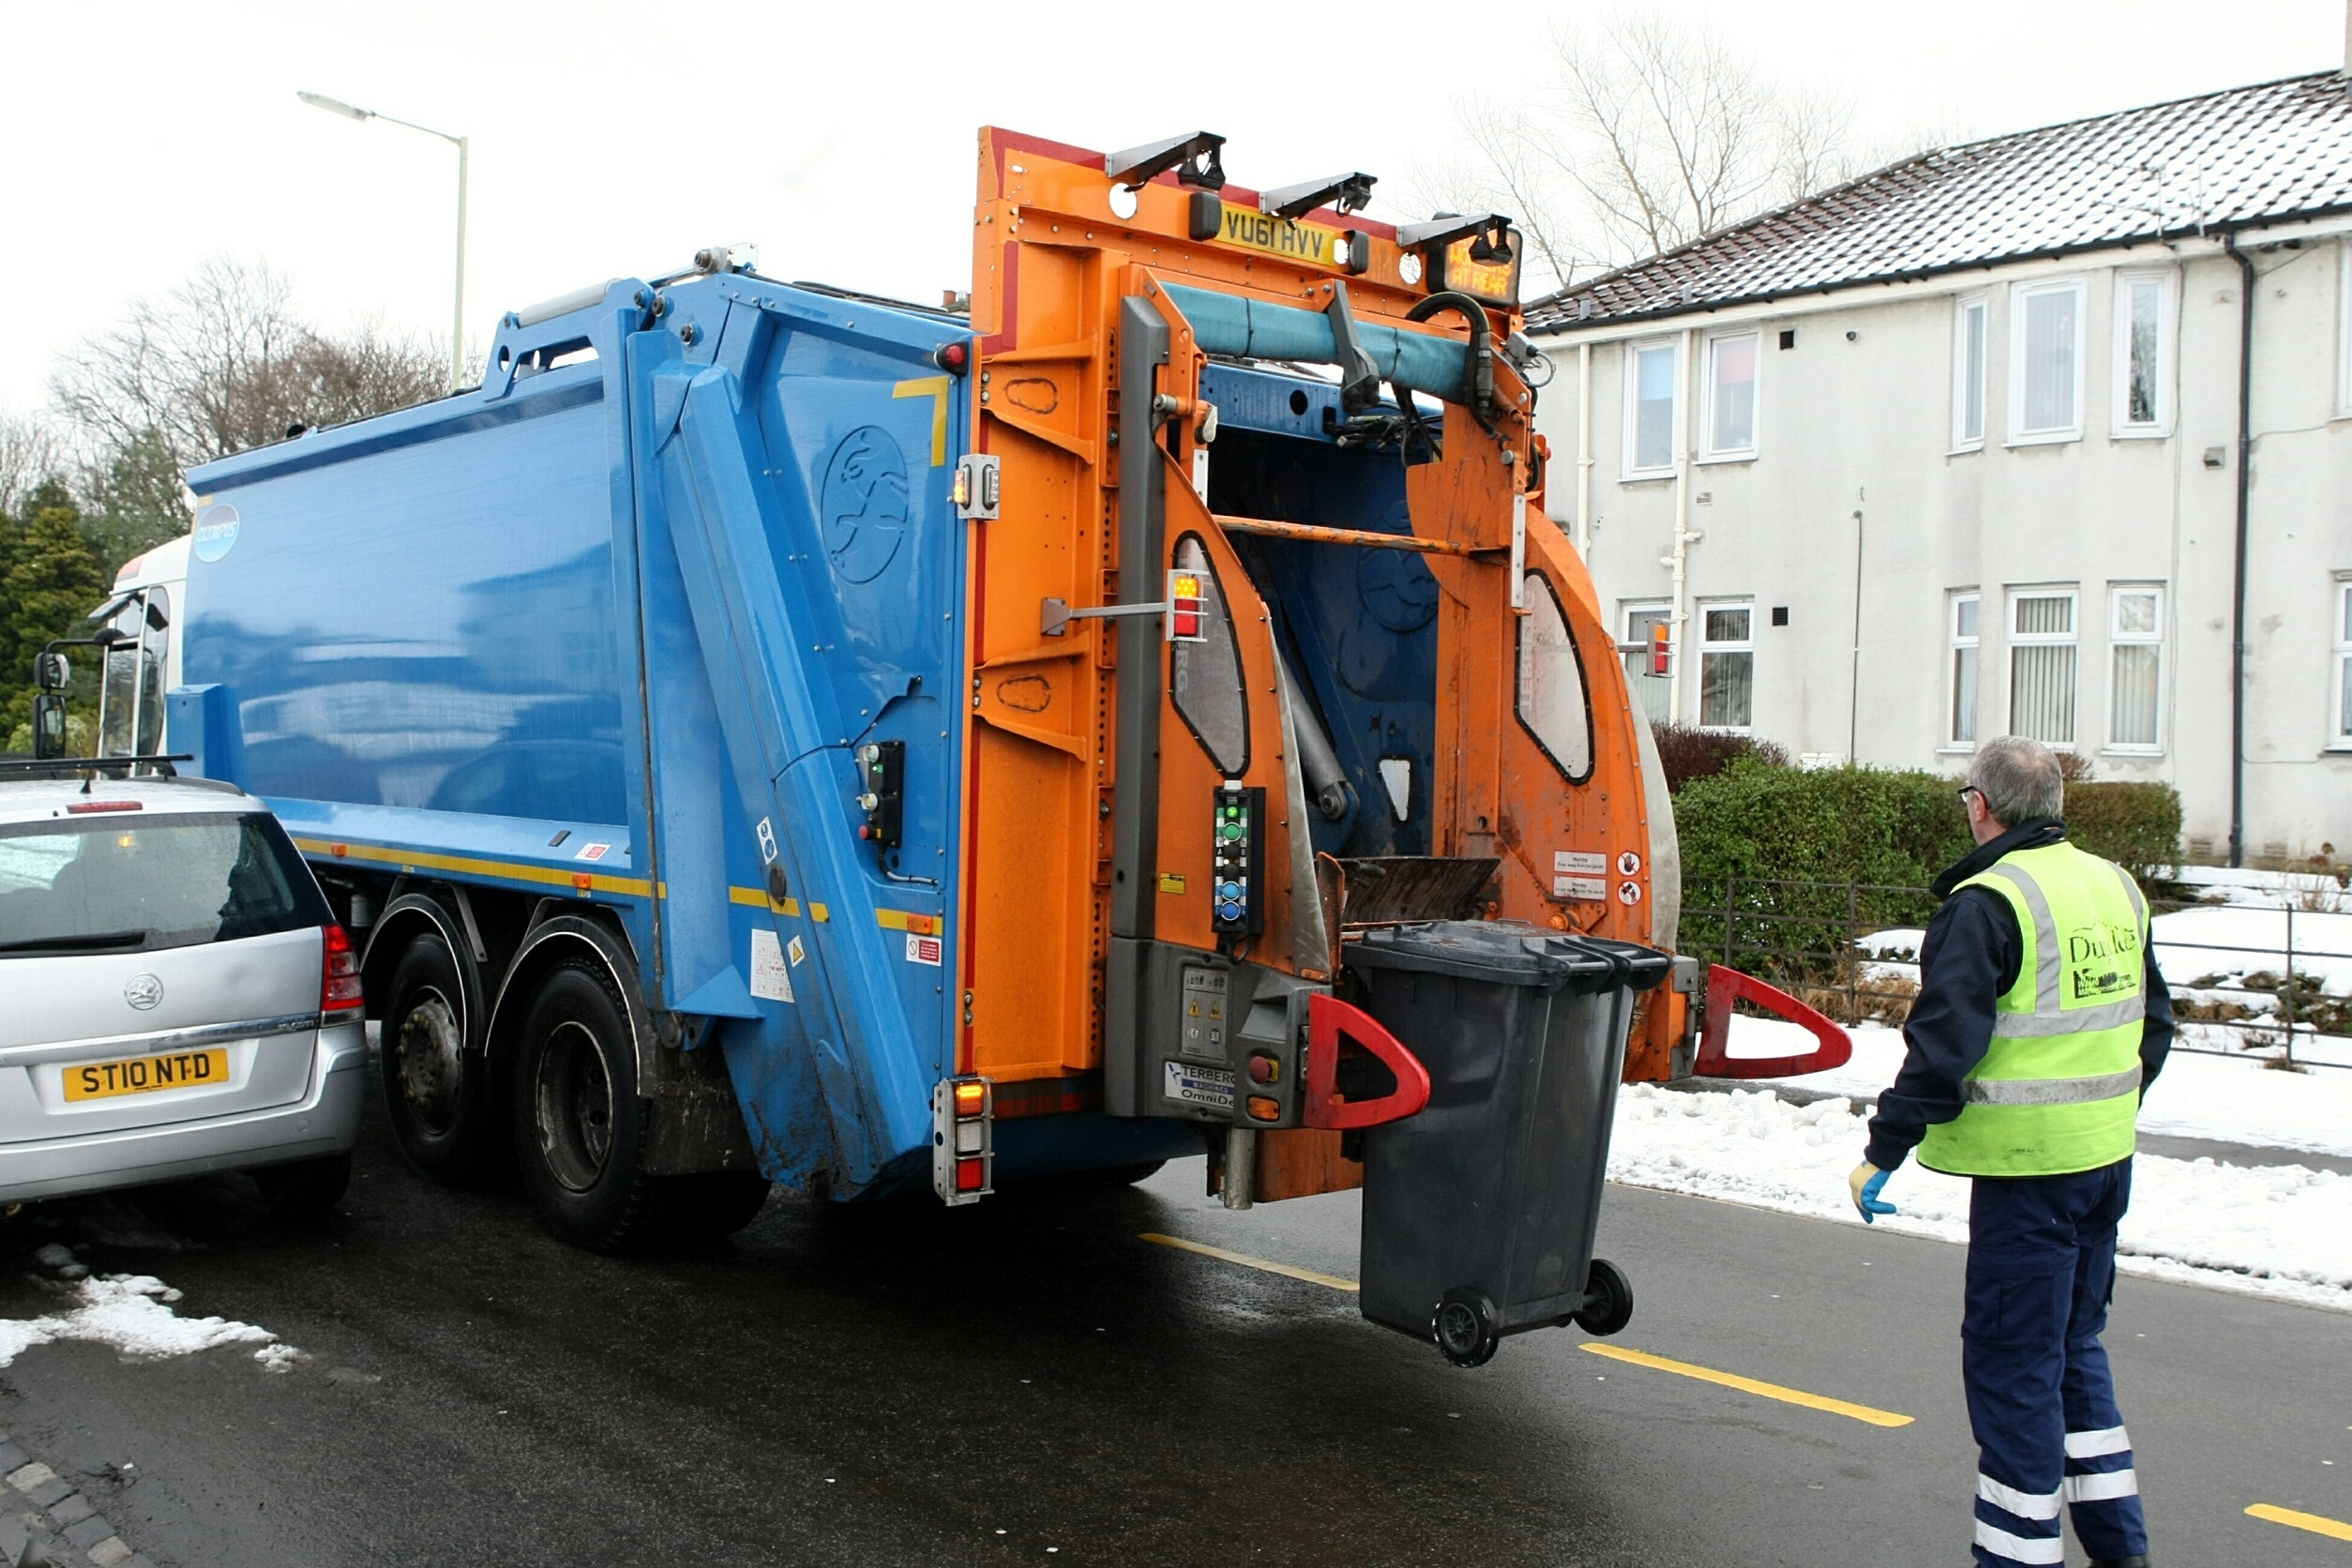 Council services including bin collections will change over Christmas.